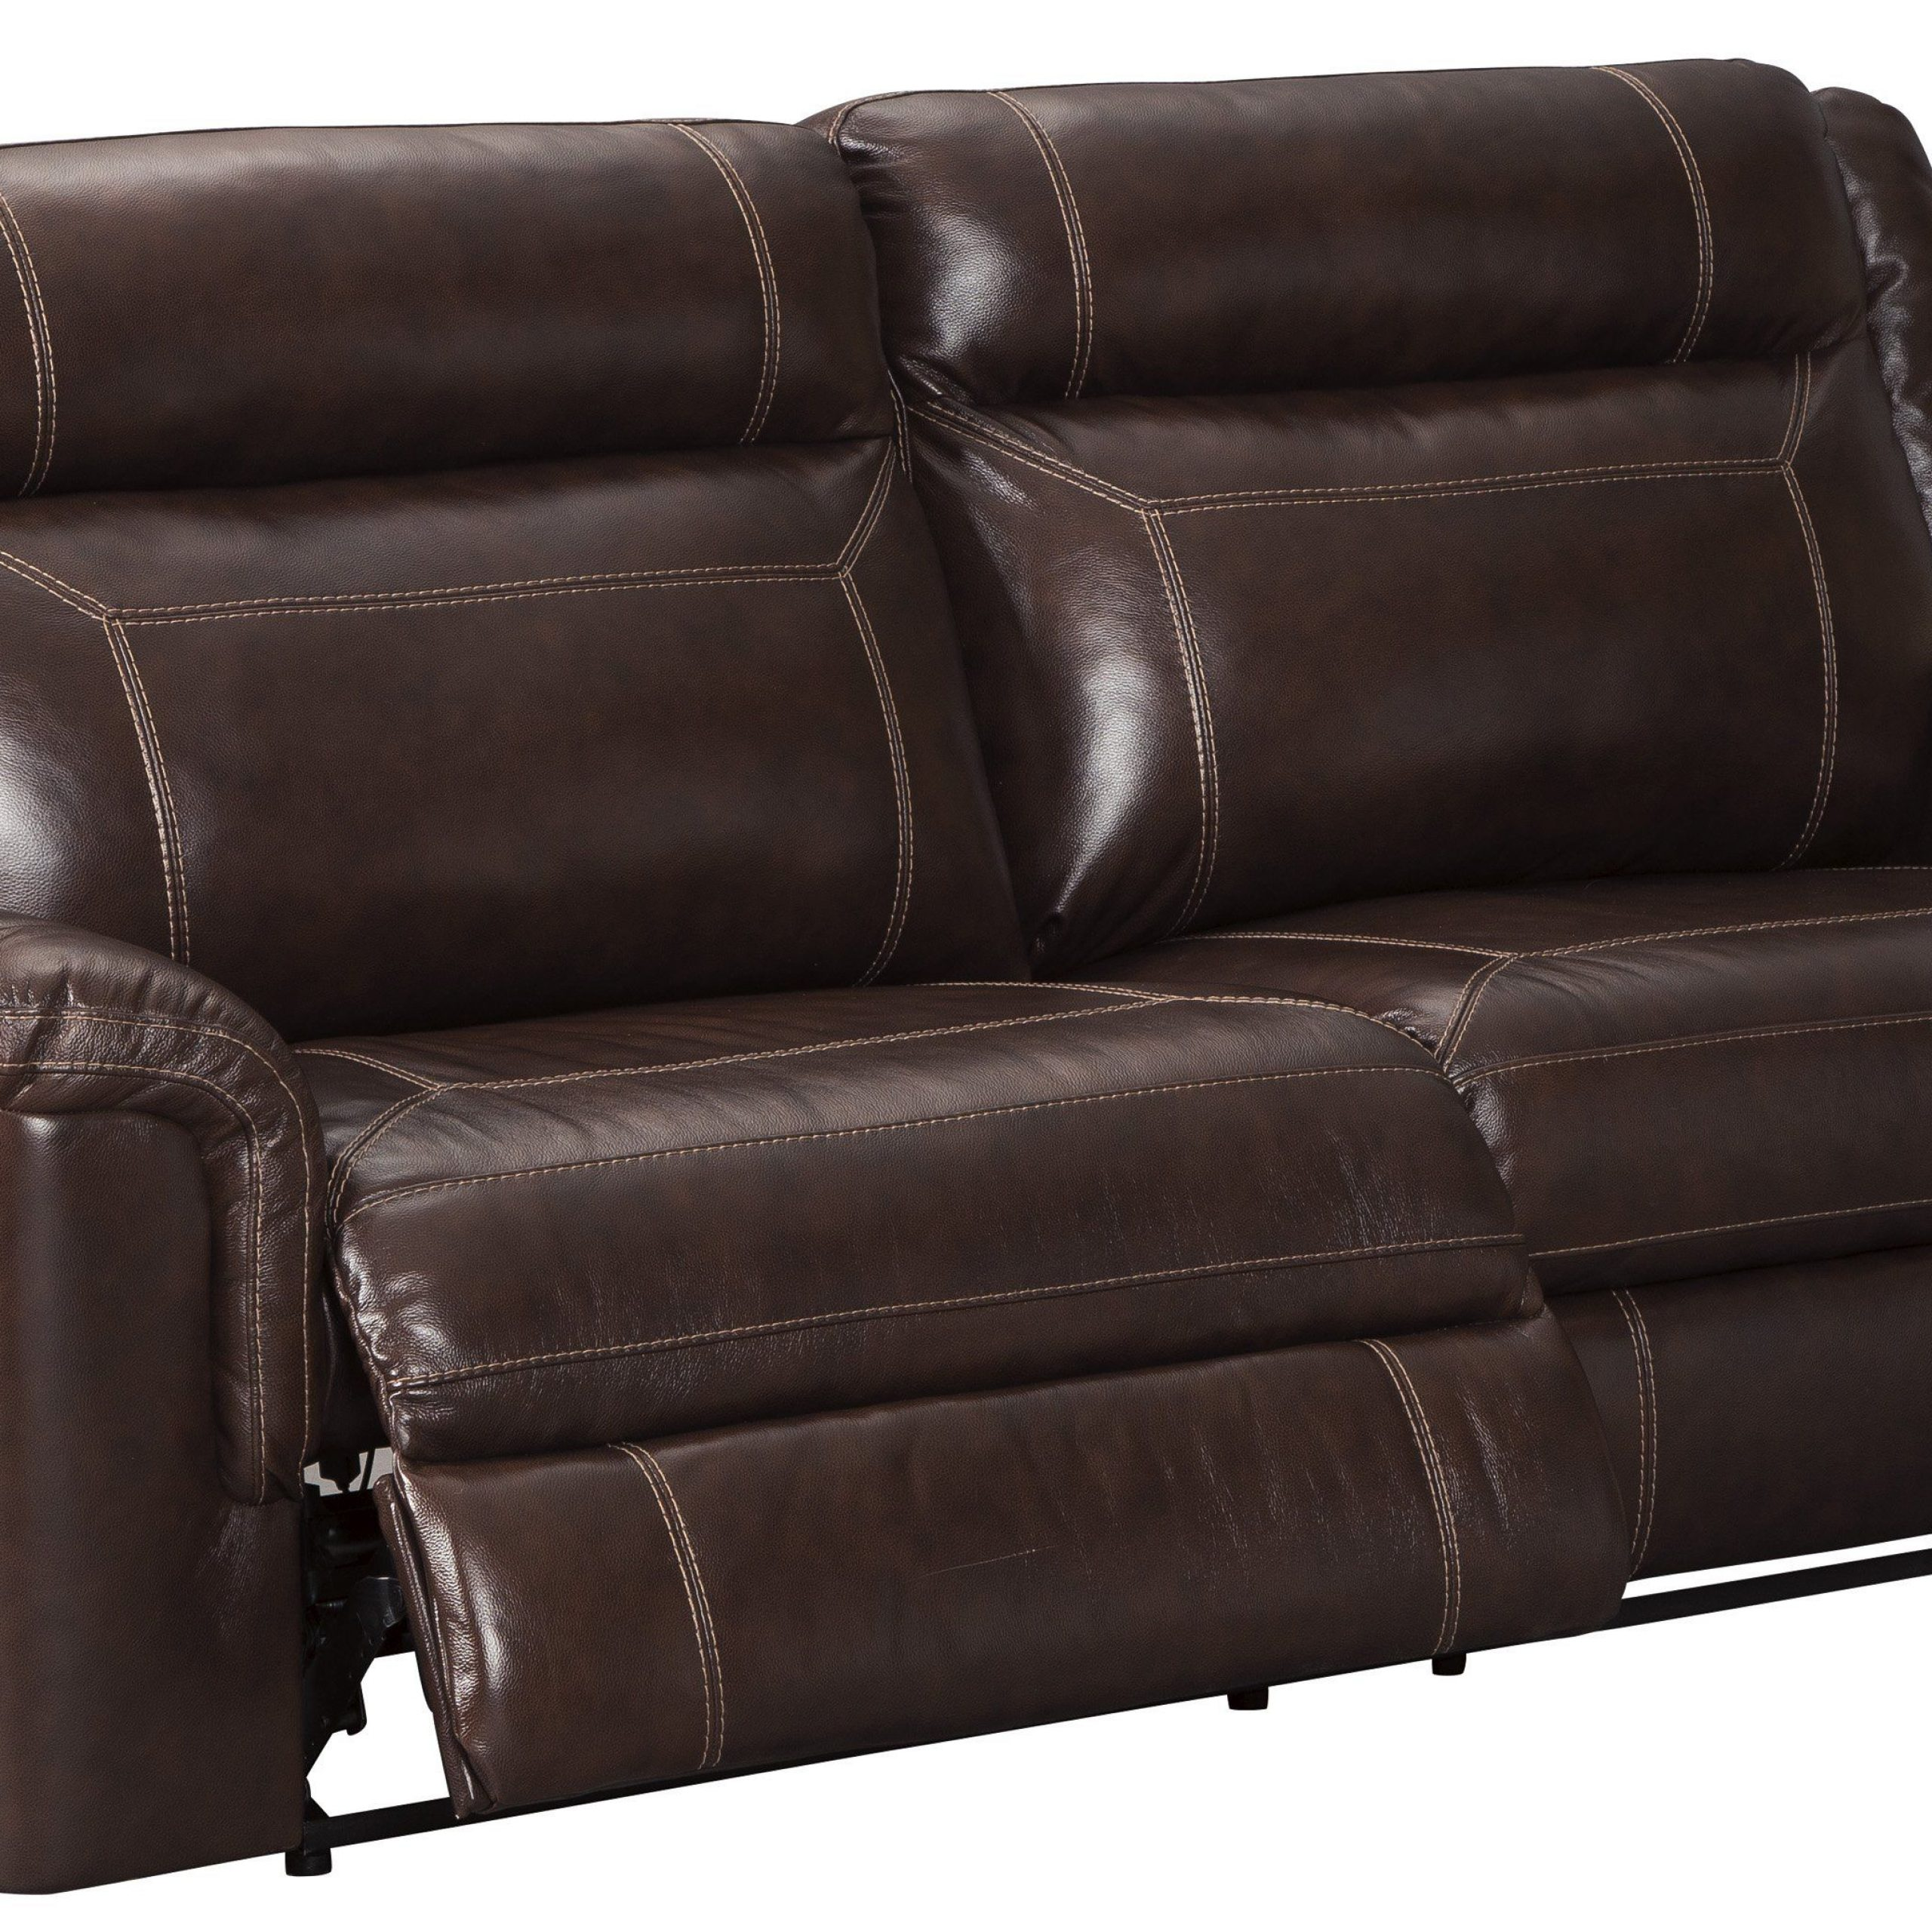 Genuine Leather Reclining Sofa And Loveseat Pertaining To Marco Leather Power Reclining Sofas (View 4 of 15)